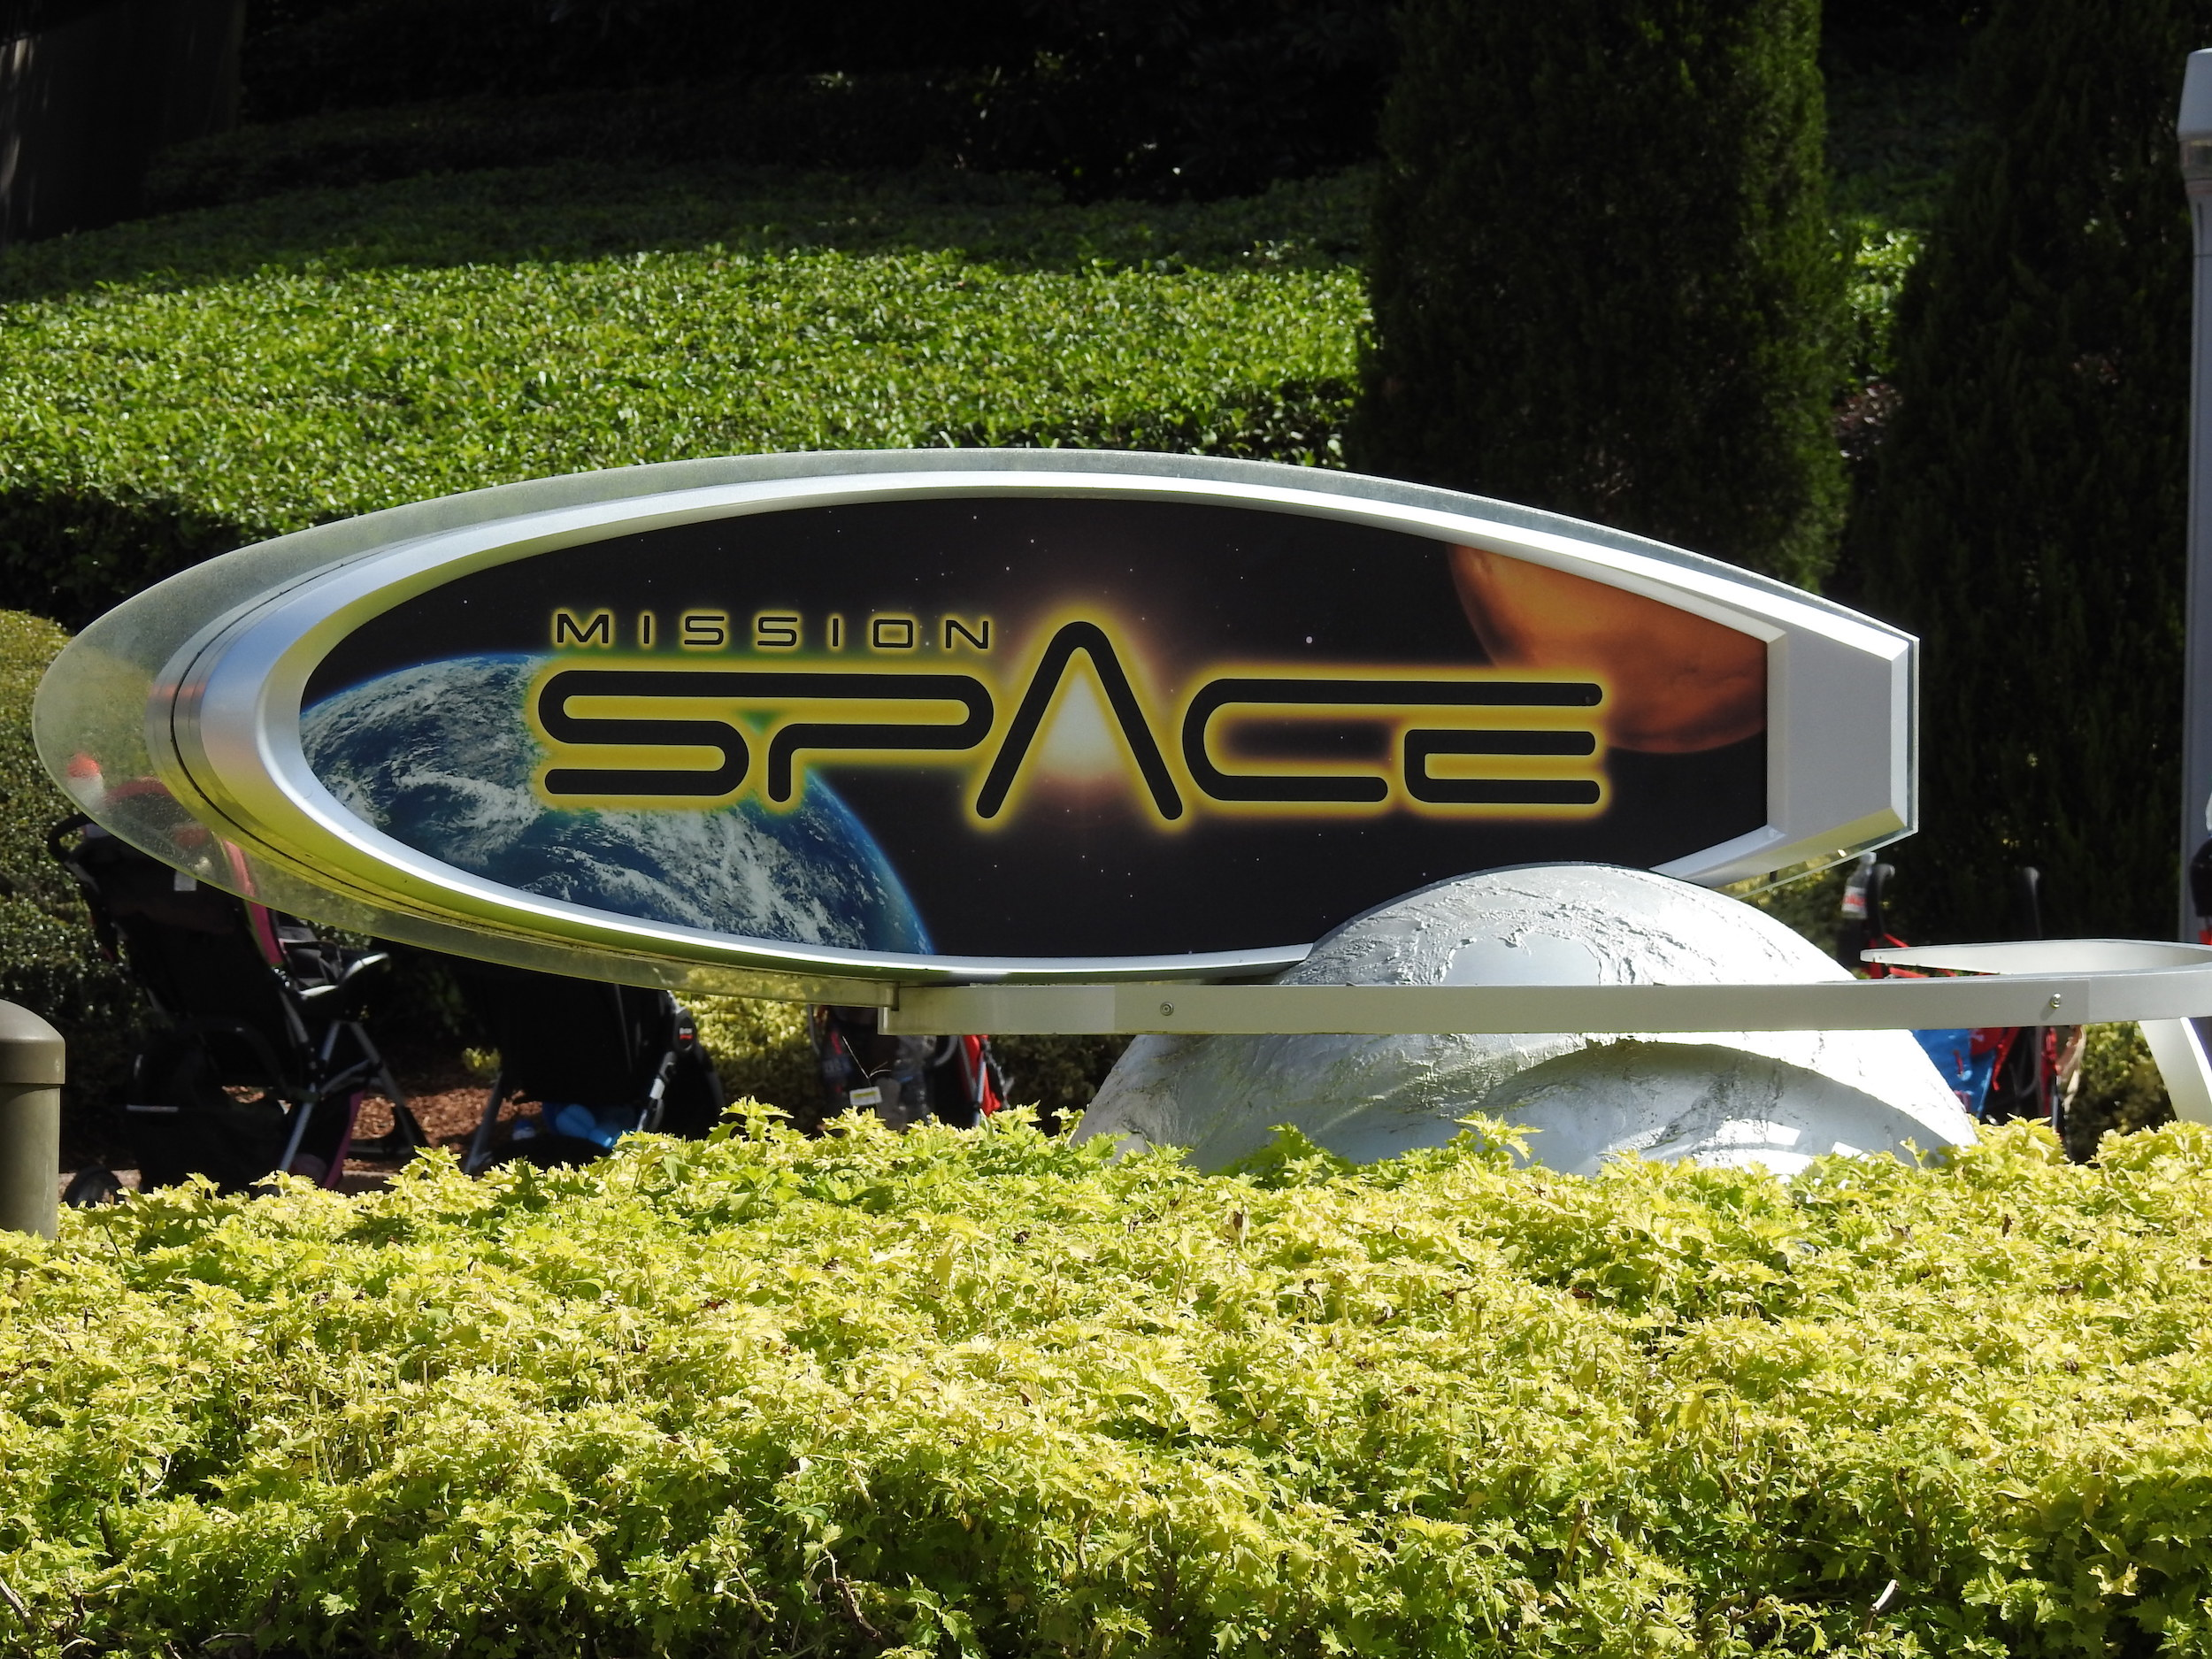 Mission Space was training to be an astronaut.